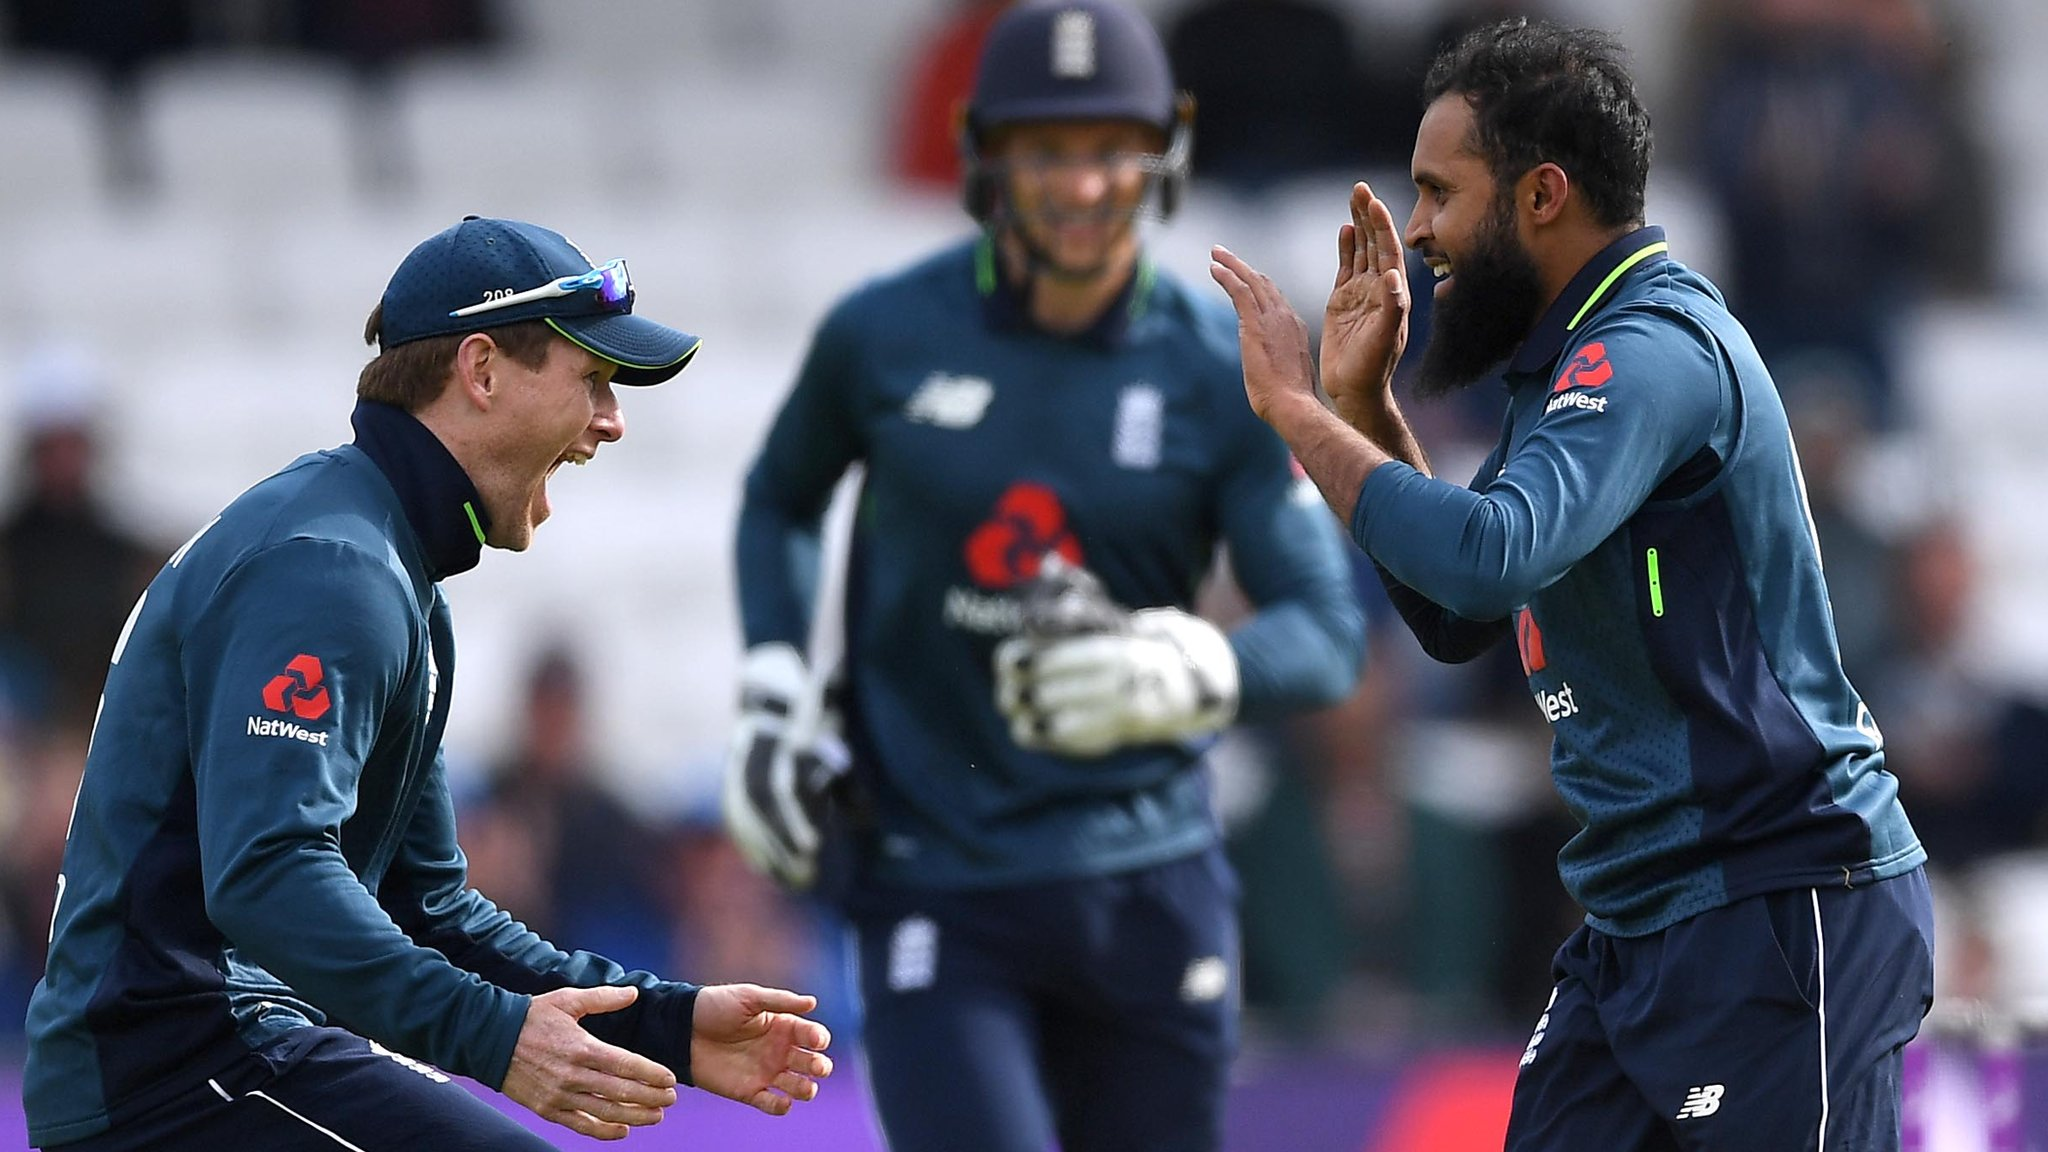 England v Pakistan: Chris Woakes takes five wickets as hosts seal 4-0 series win